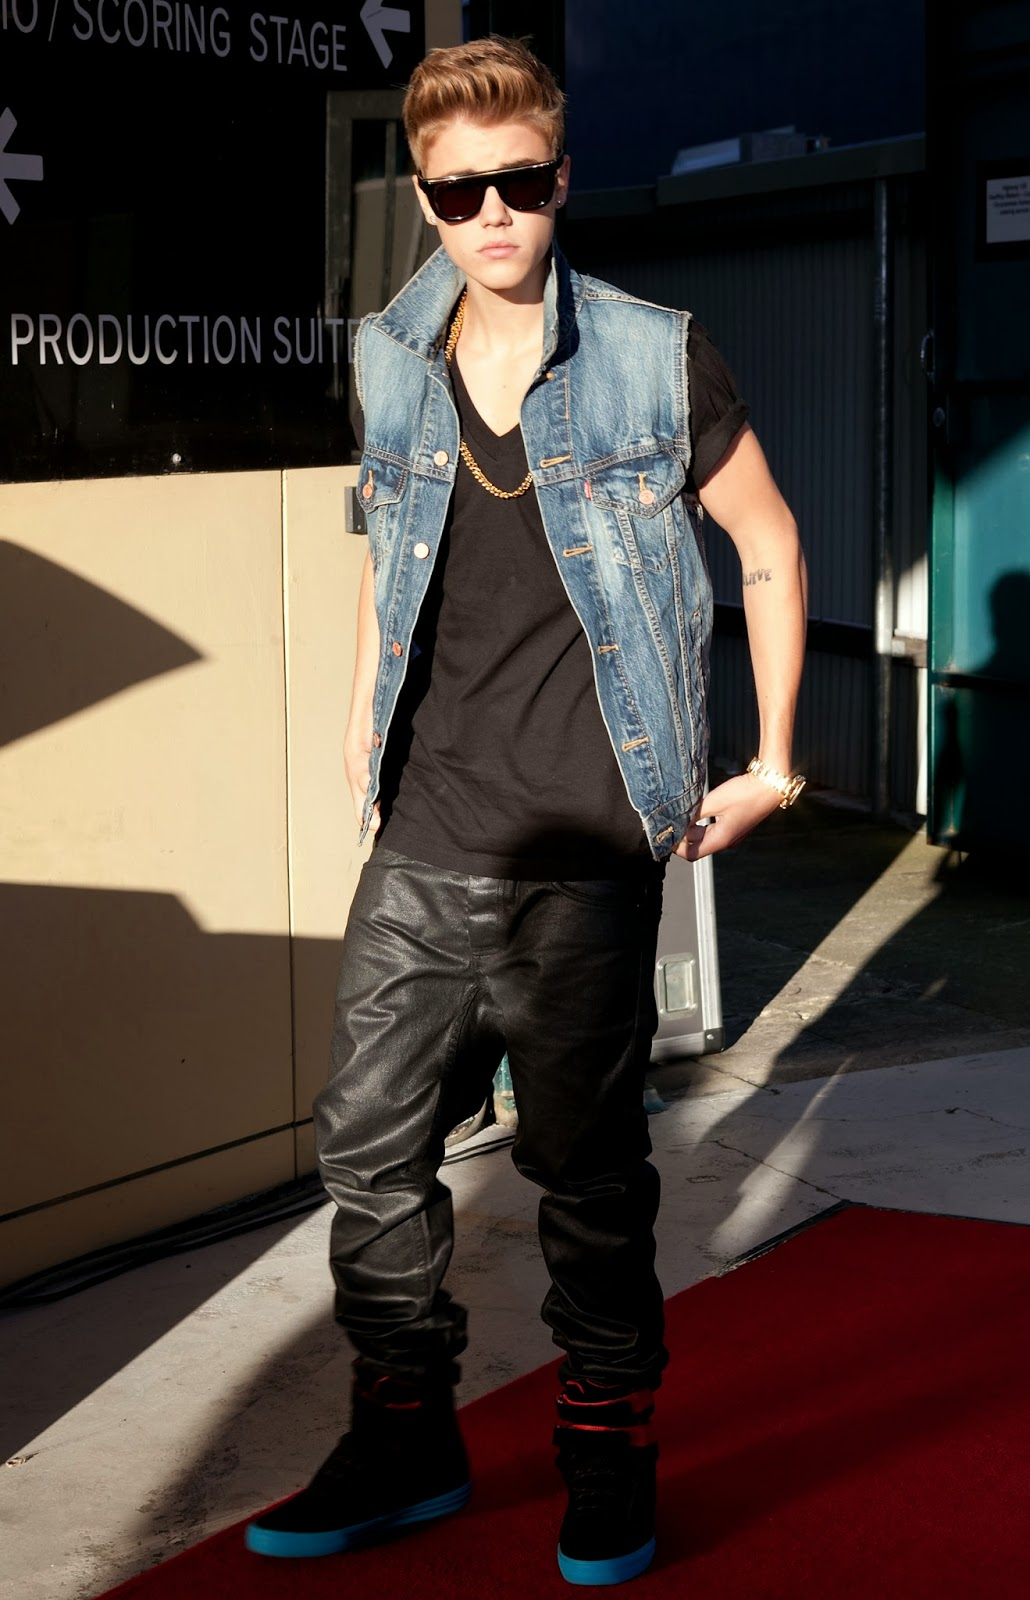 fashion inspiration from justin bieber bio street